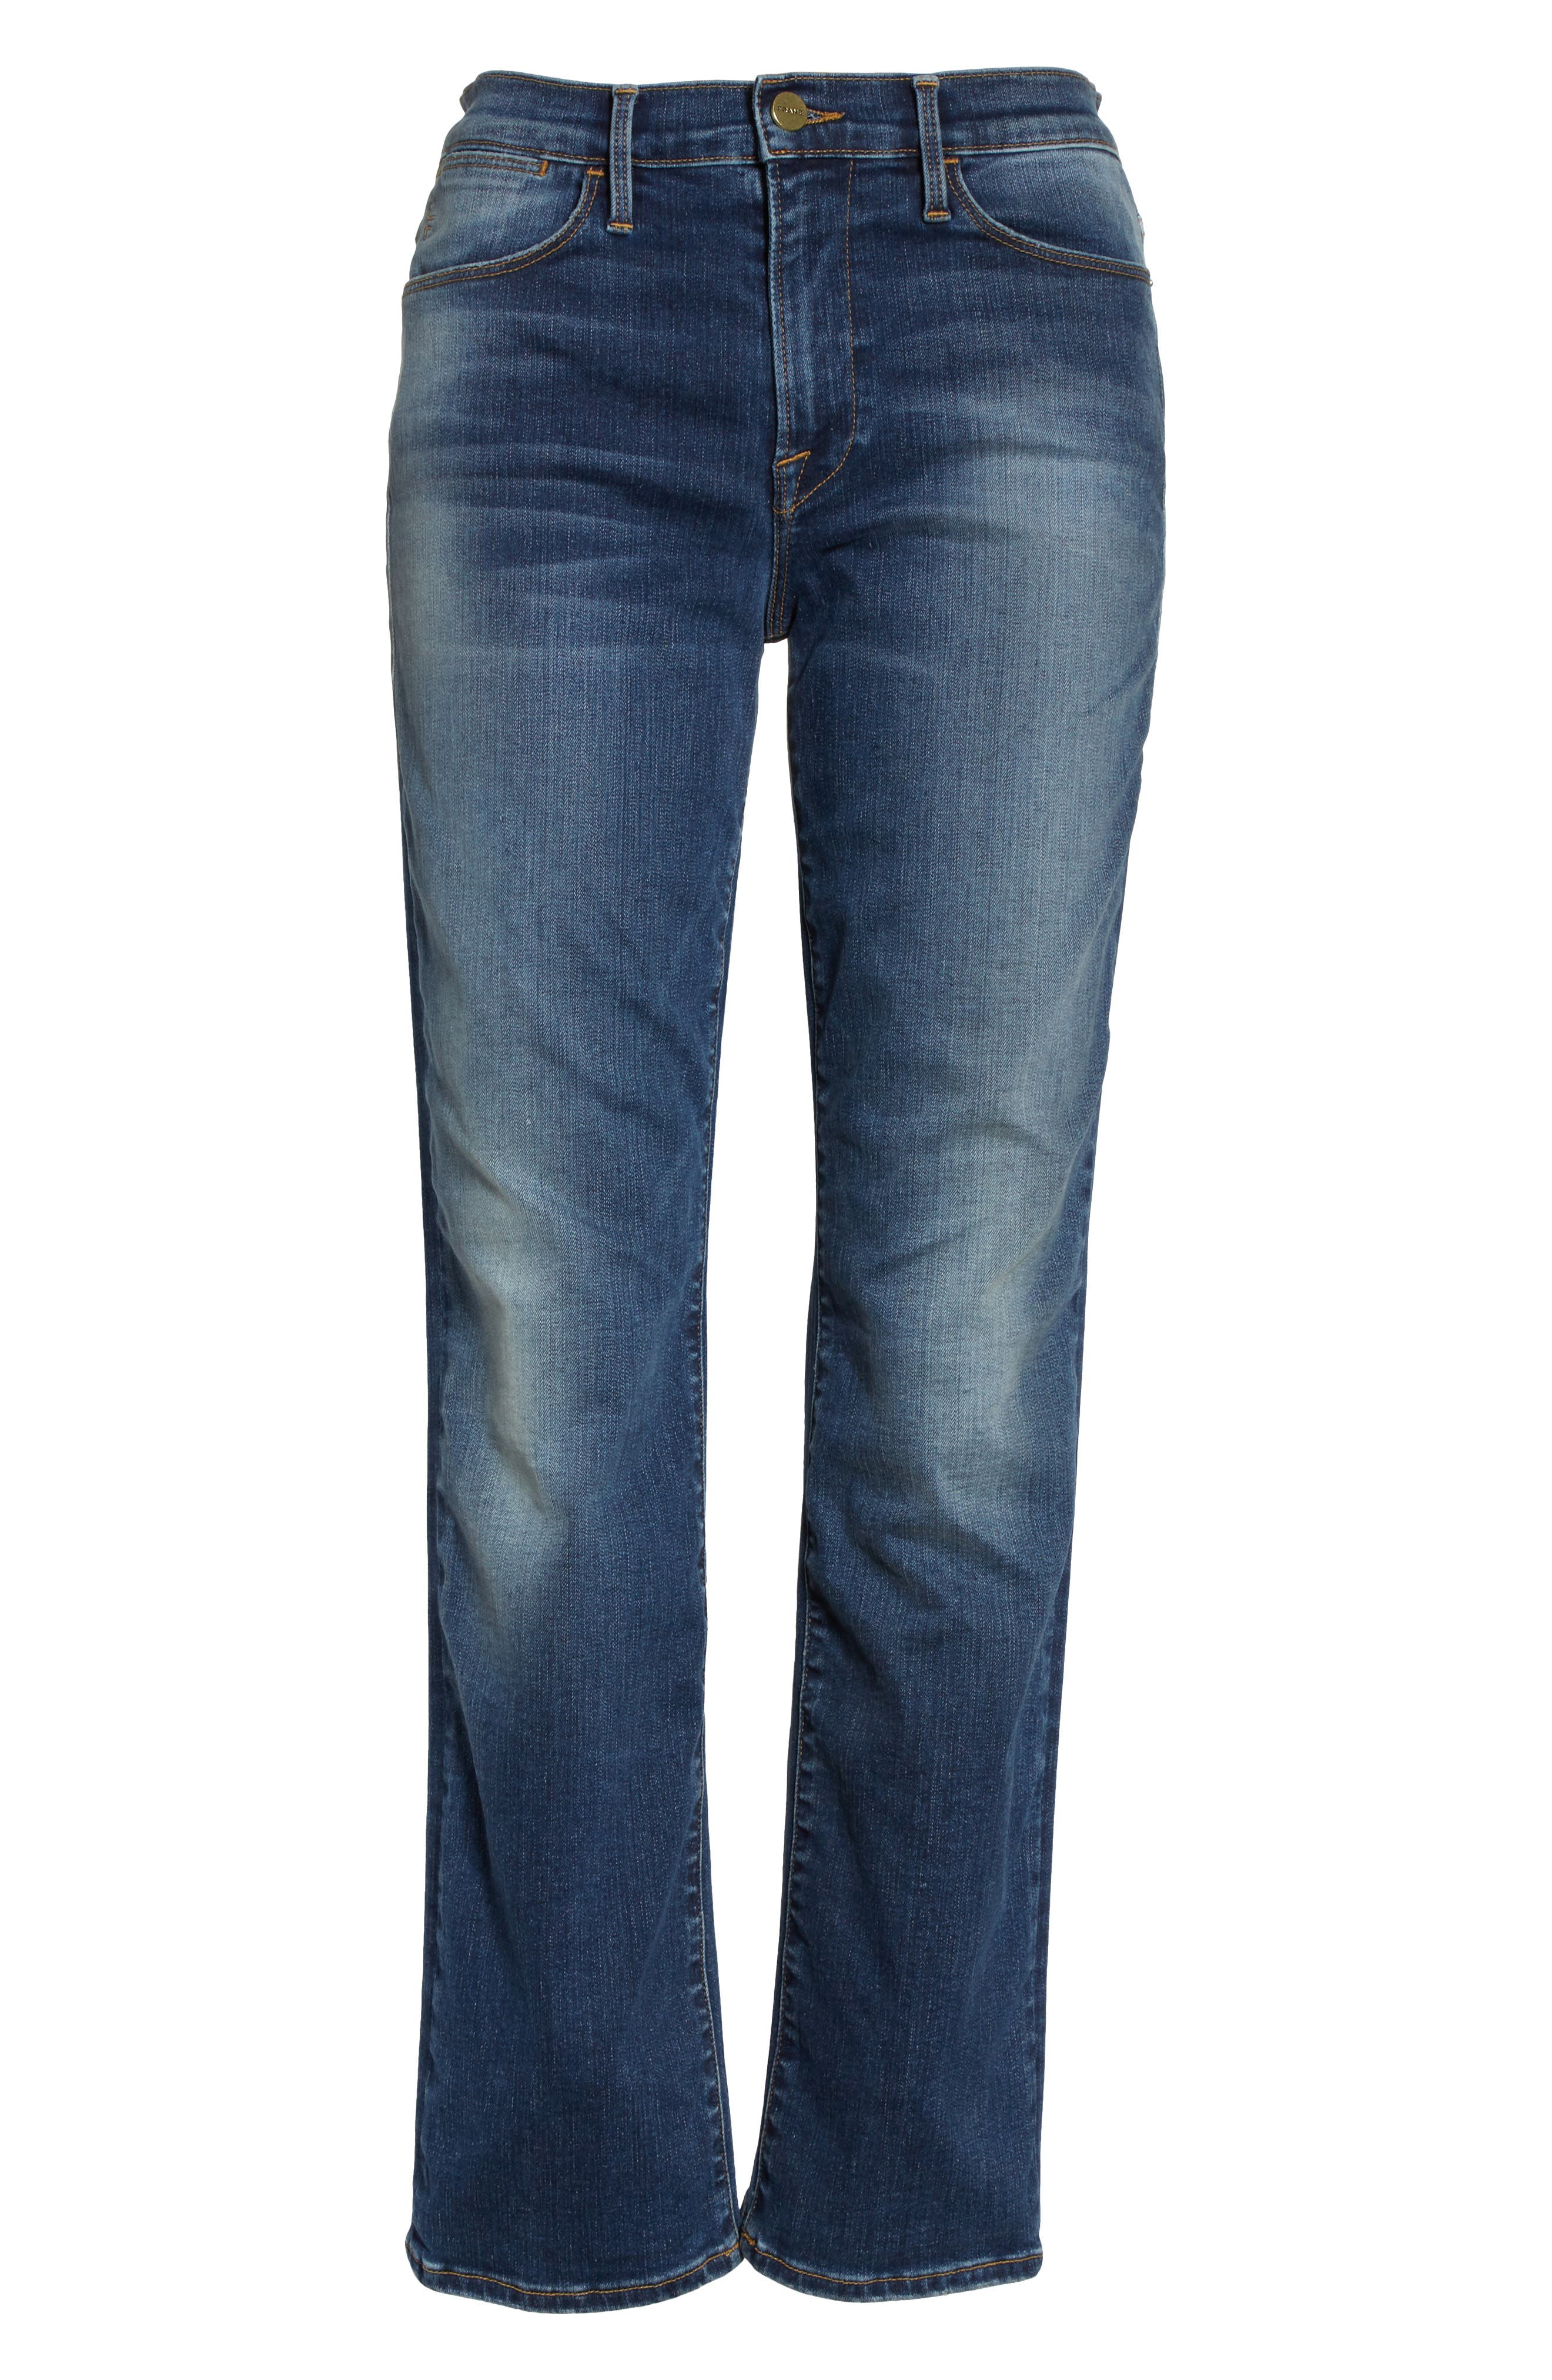 Le High Ankle Straight Leg Jeans,                             Alternate thumbnail 7, color,                             402